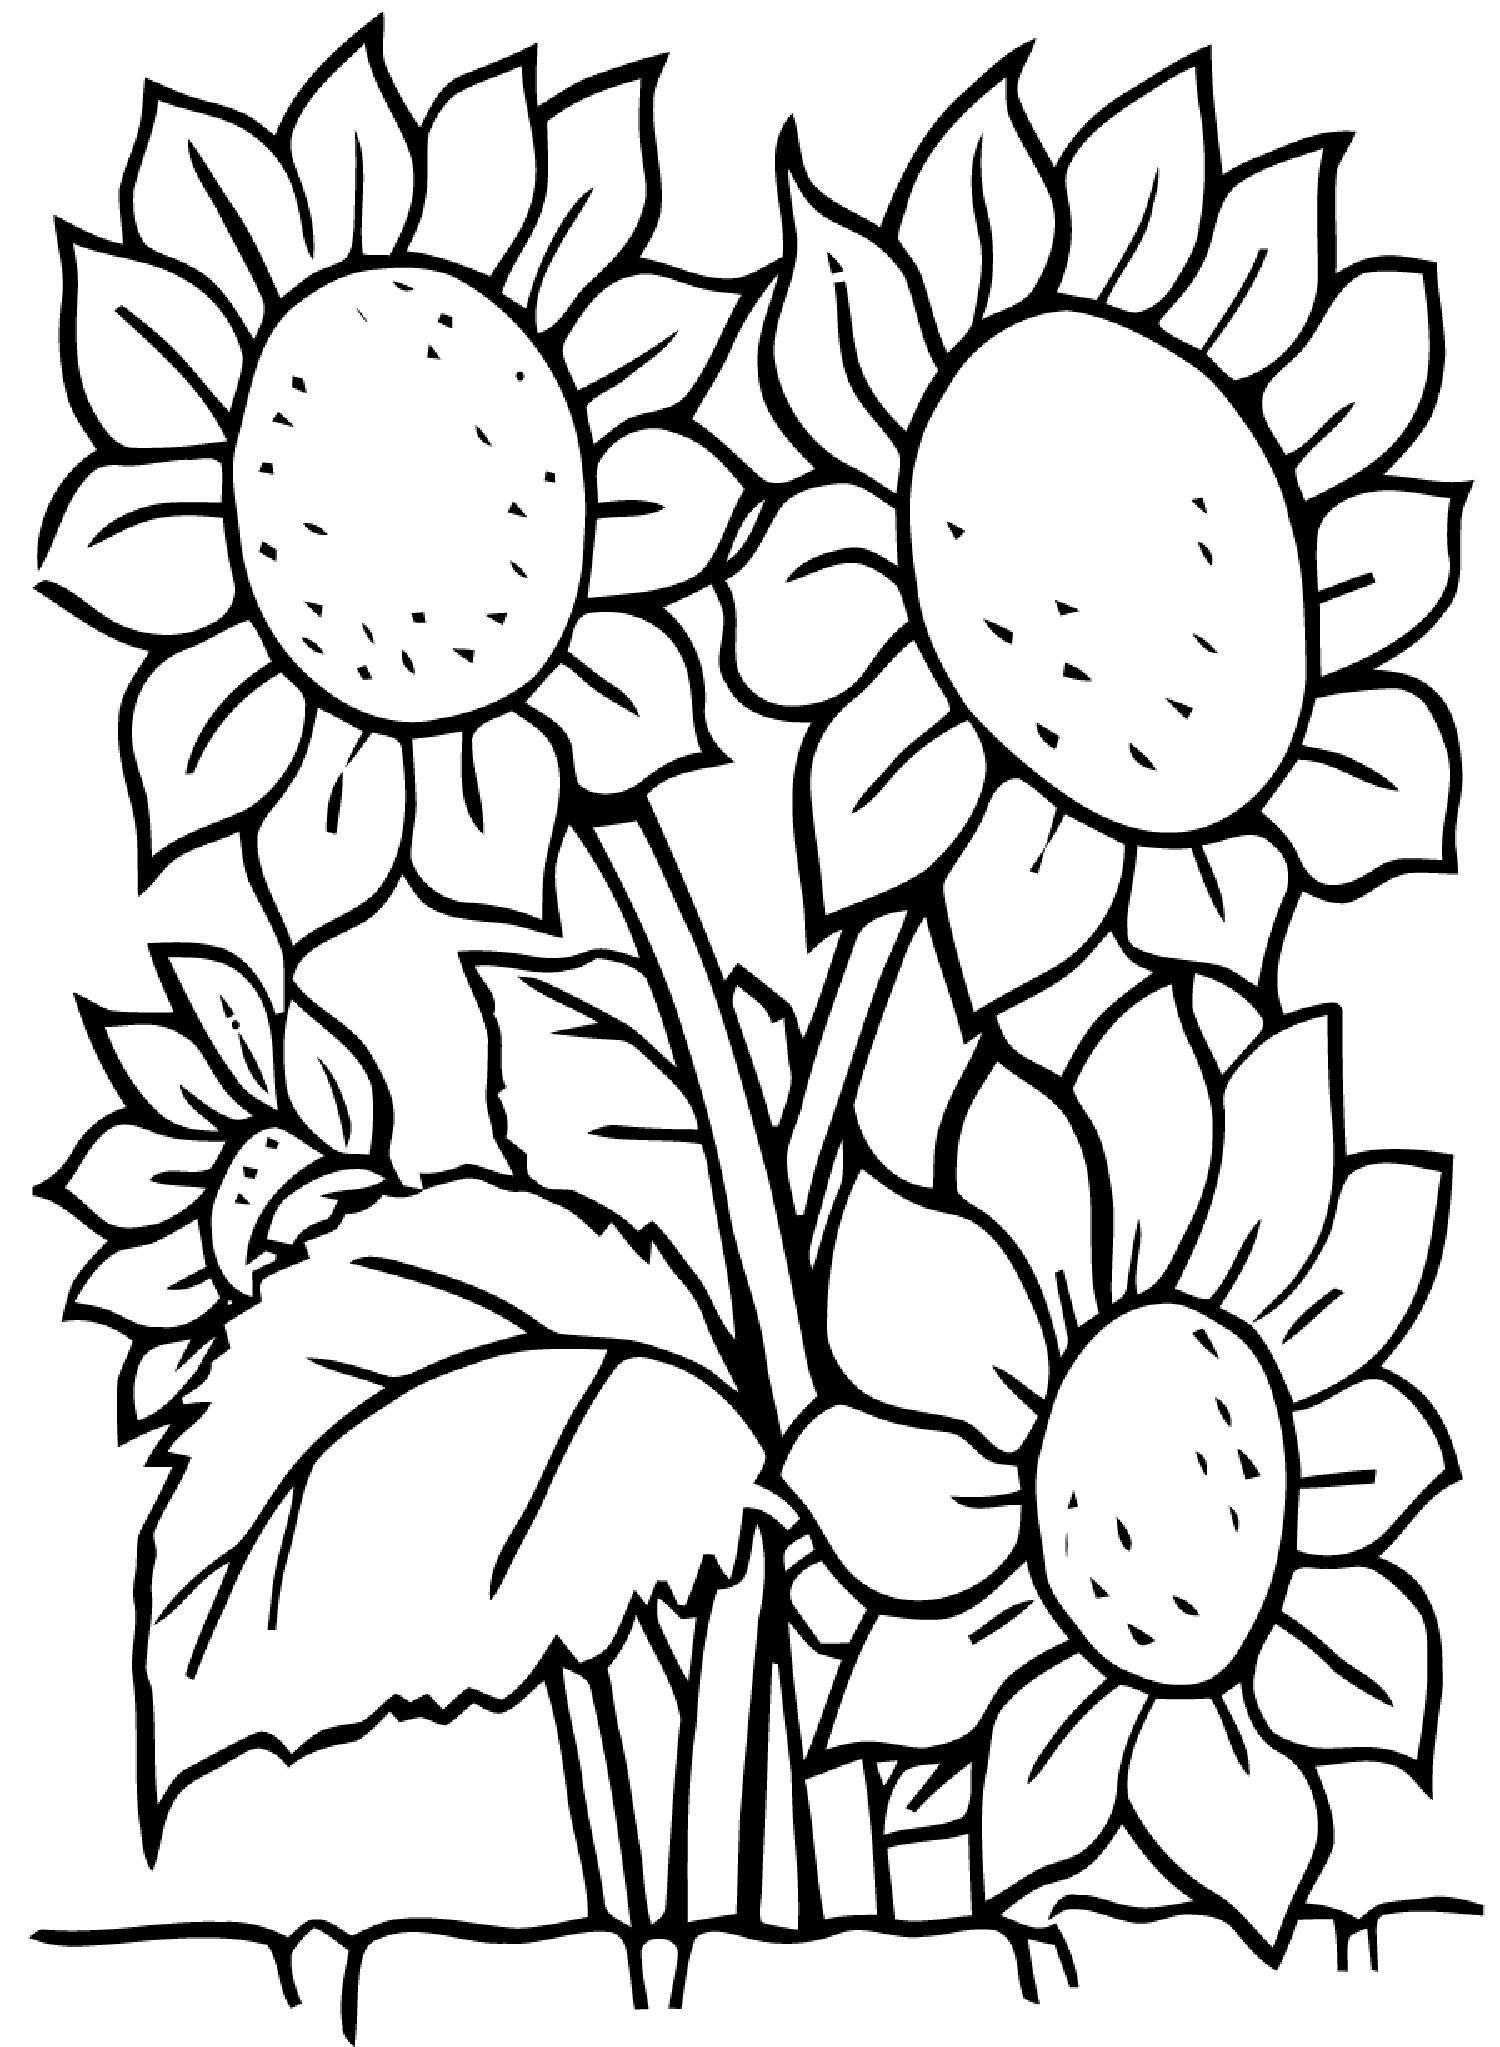 Sunflowers Flowers Coloring Pages For Kids To Print Color